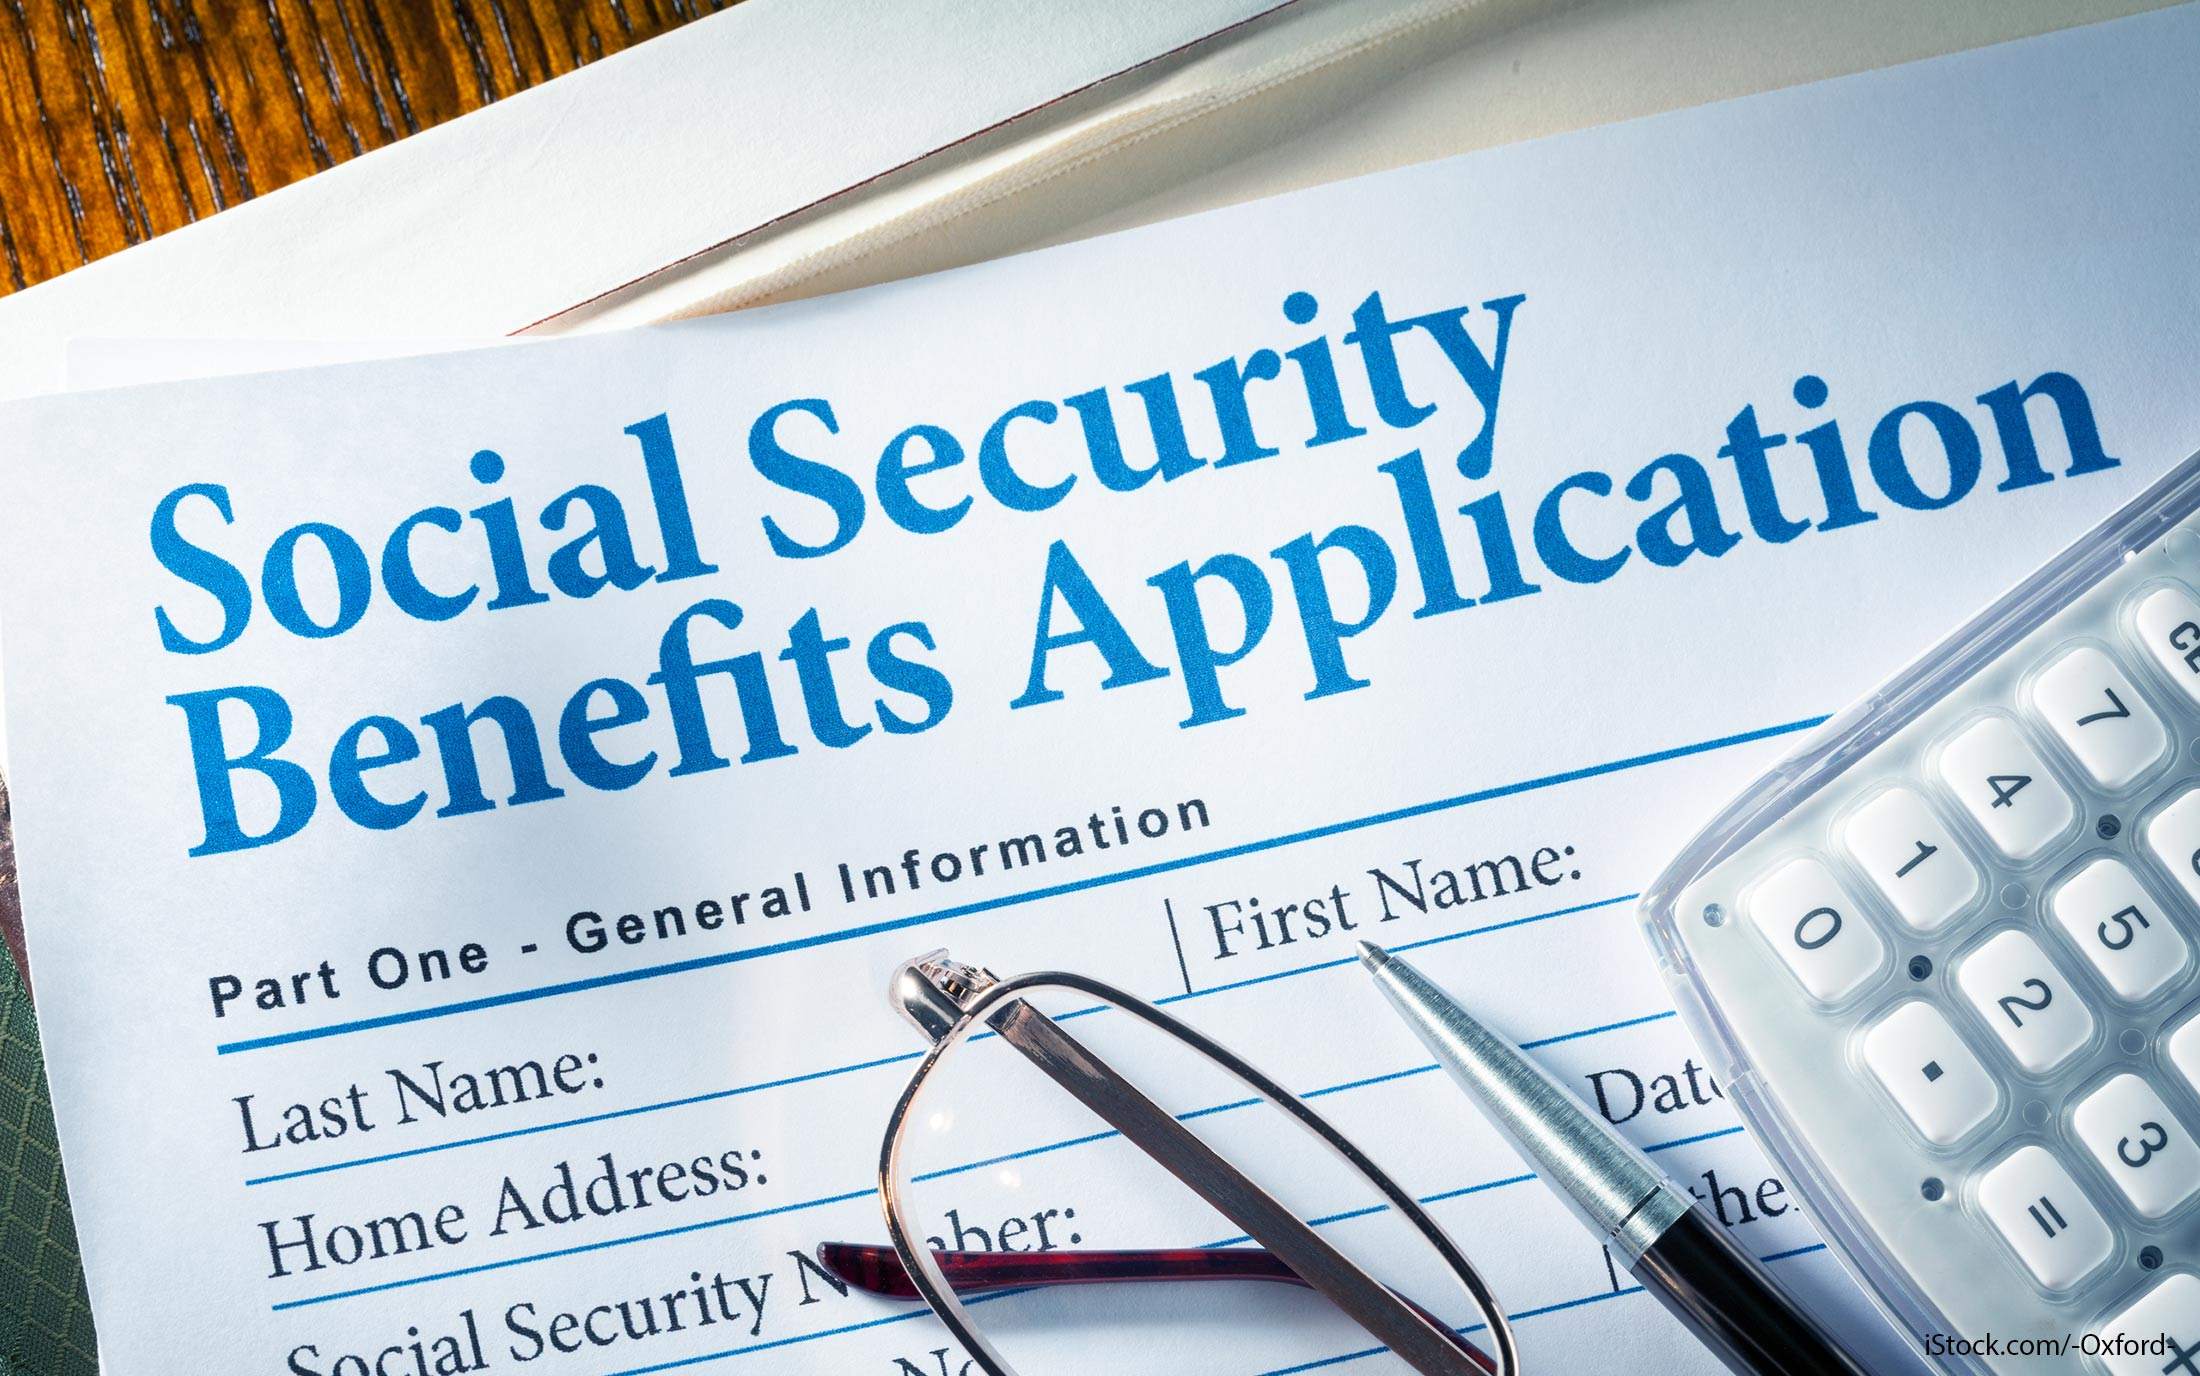 Do stock options affect social security benefits